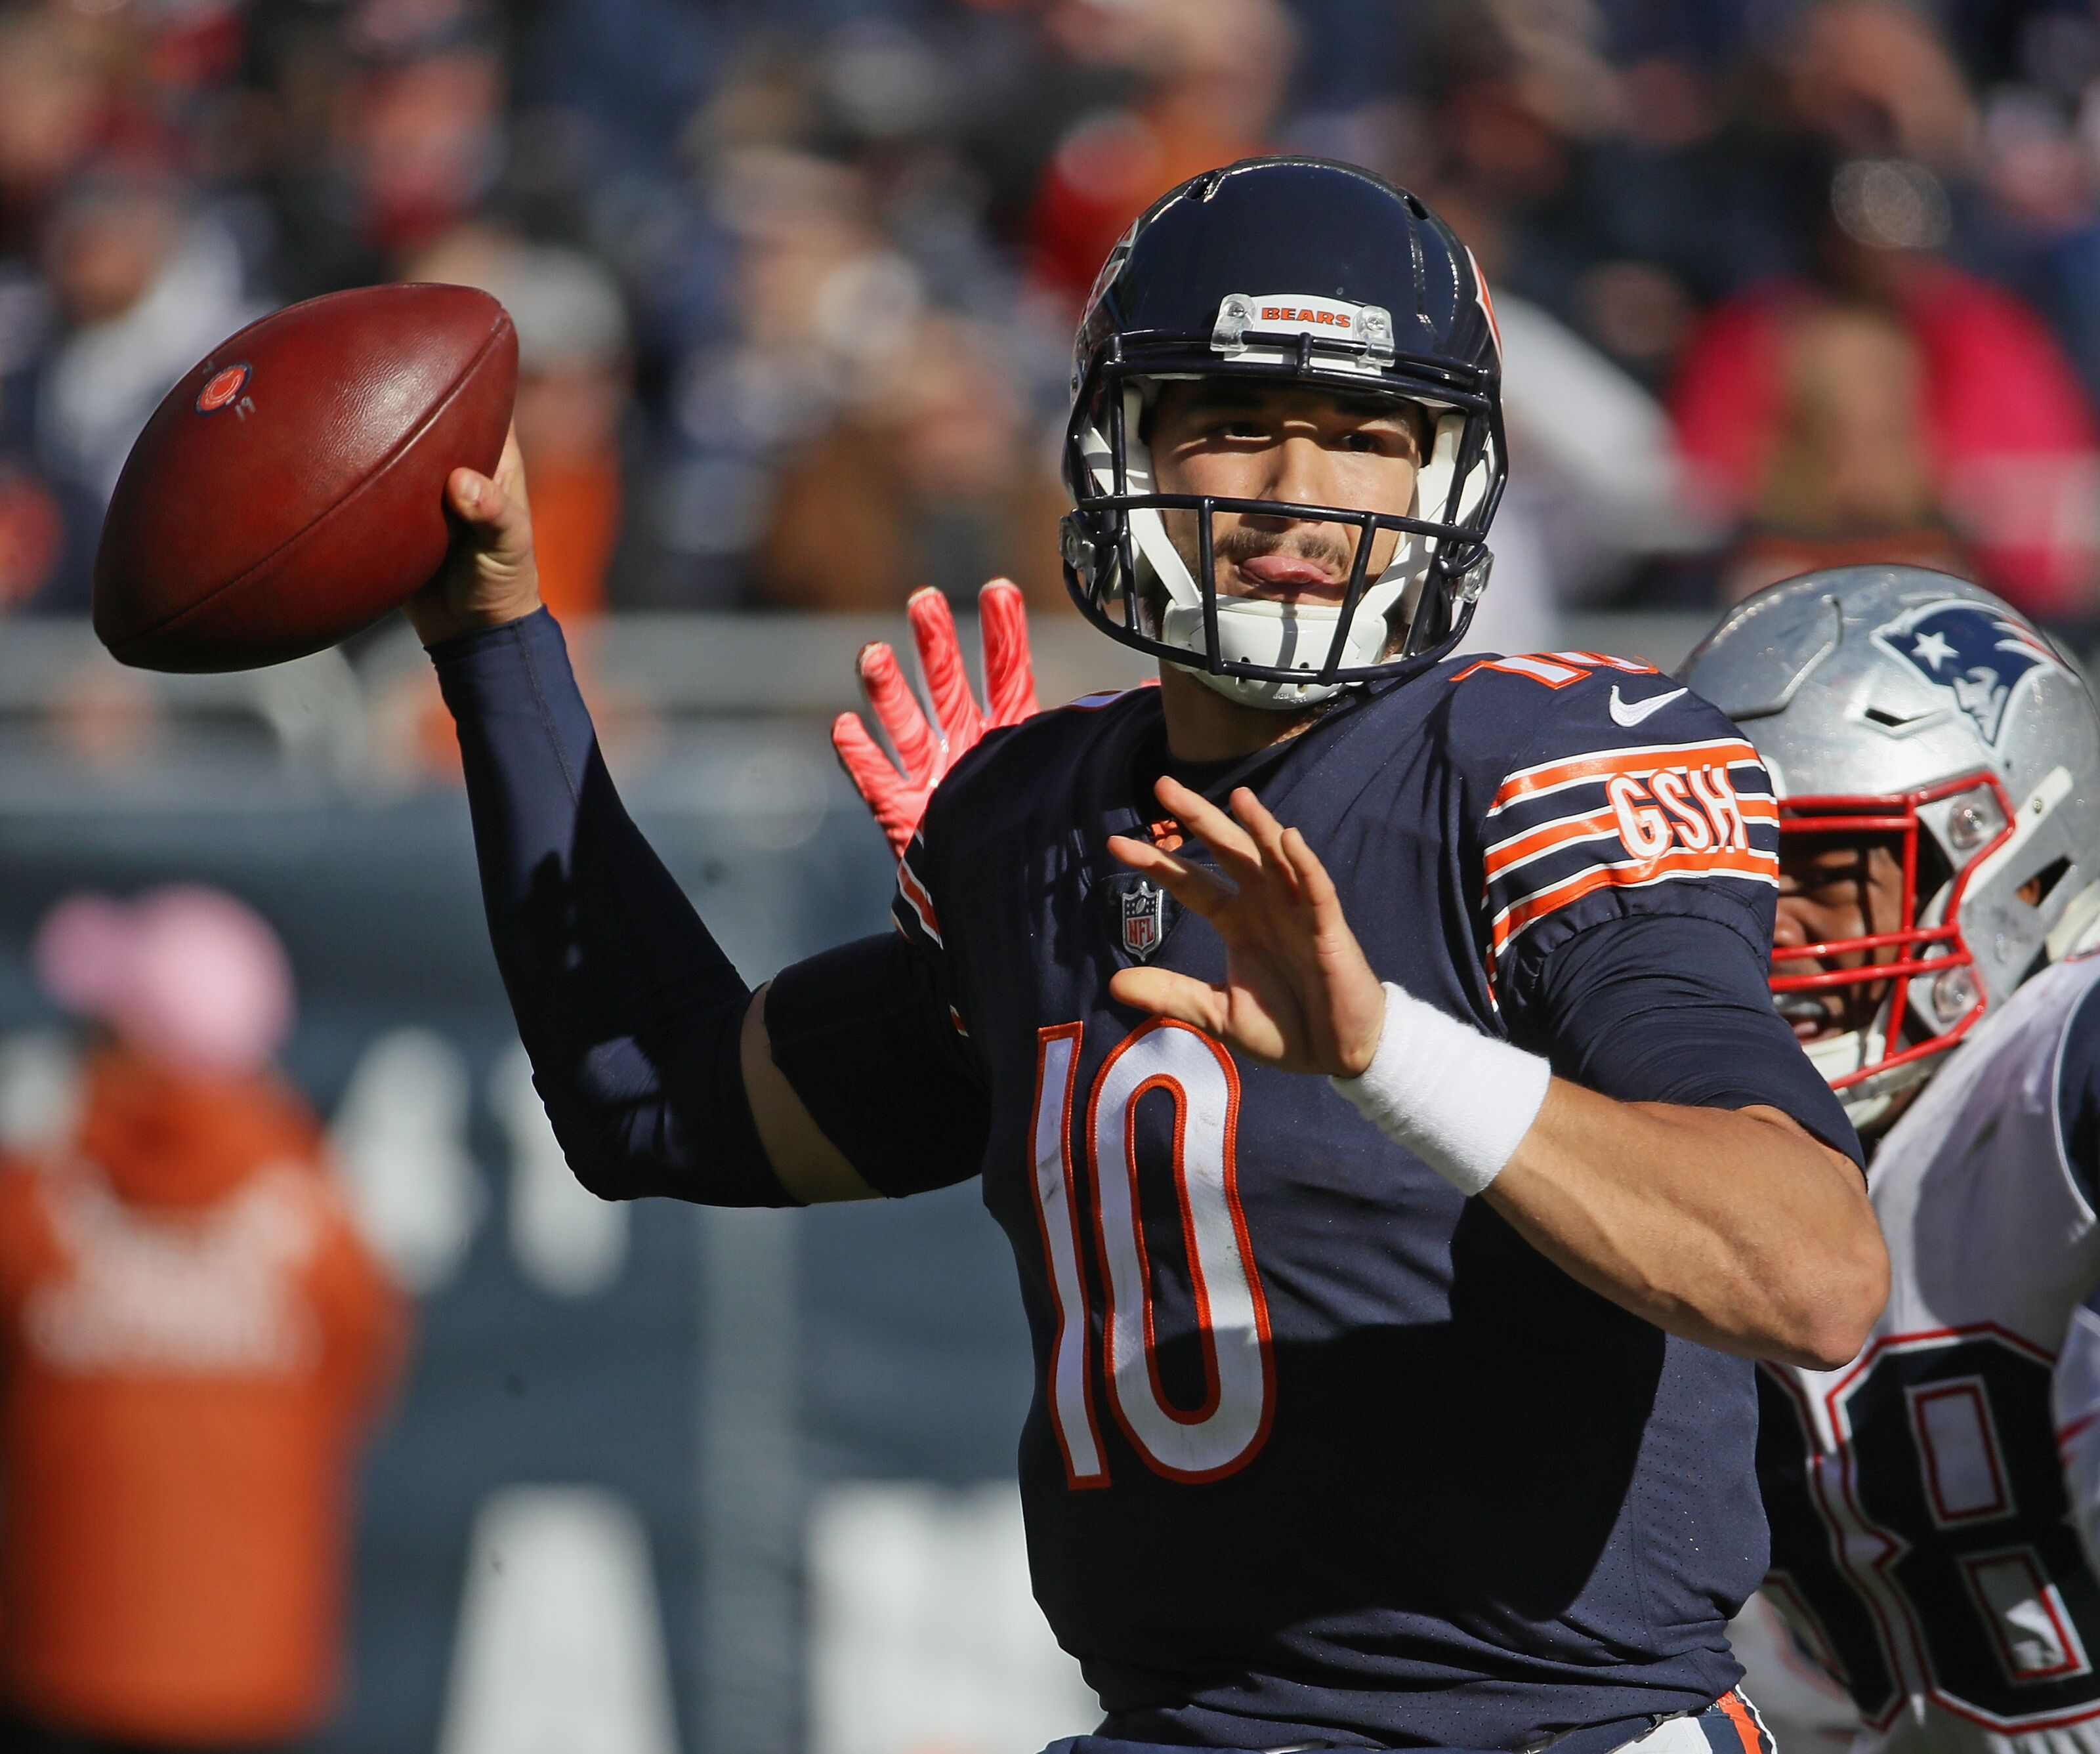 Mitchell Trubisky shows he still has a lot to learn